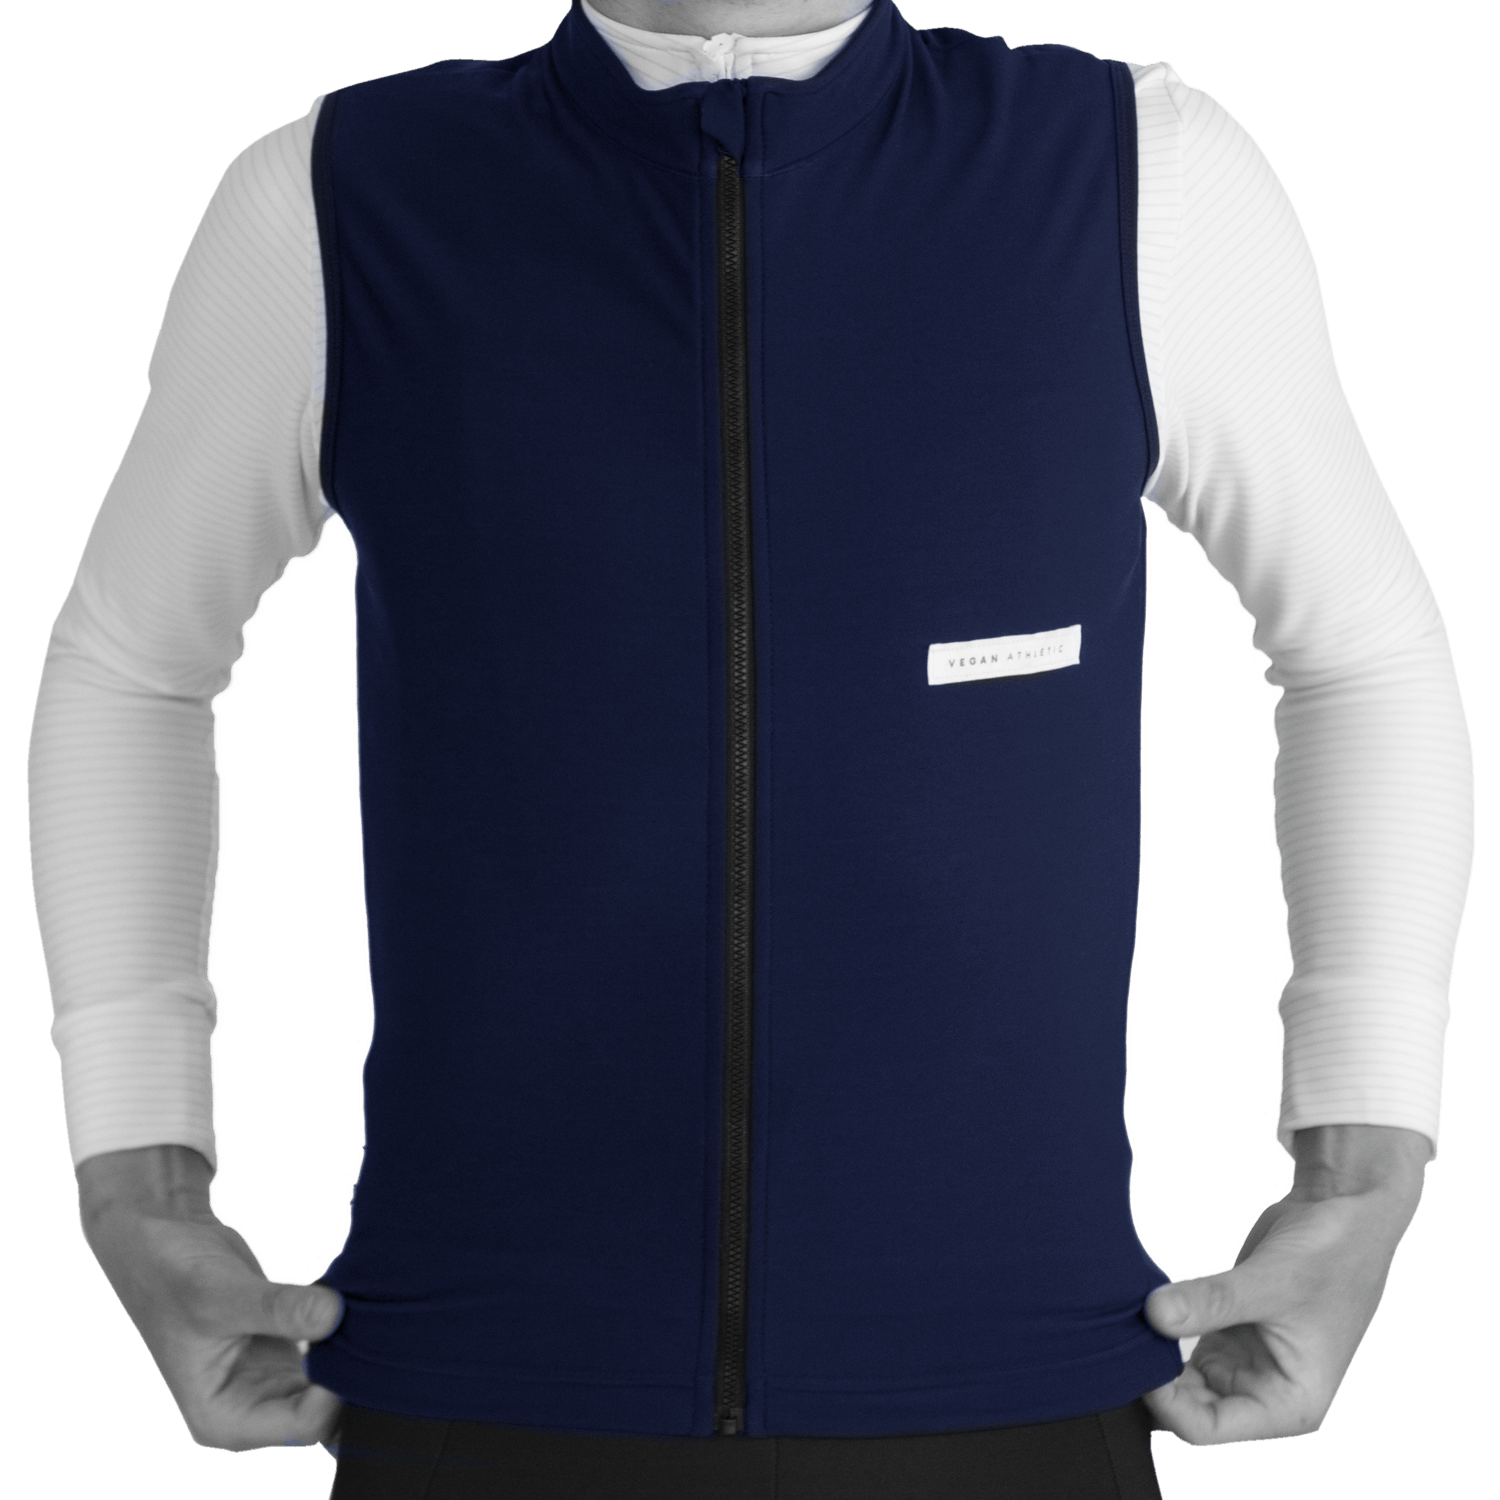 6052e73edfca Our opinion on cycling vests is that they should be thermal and highly  breathable